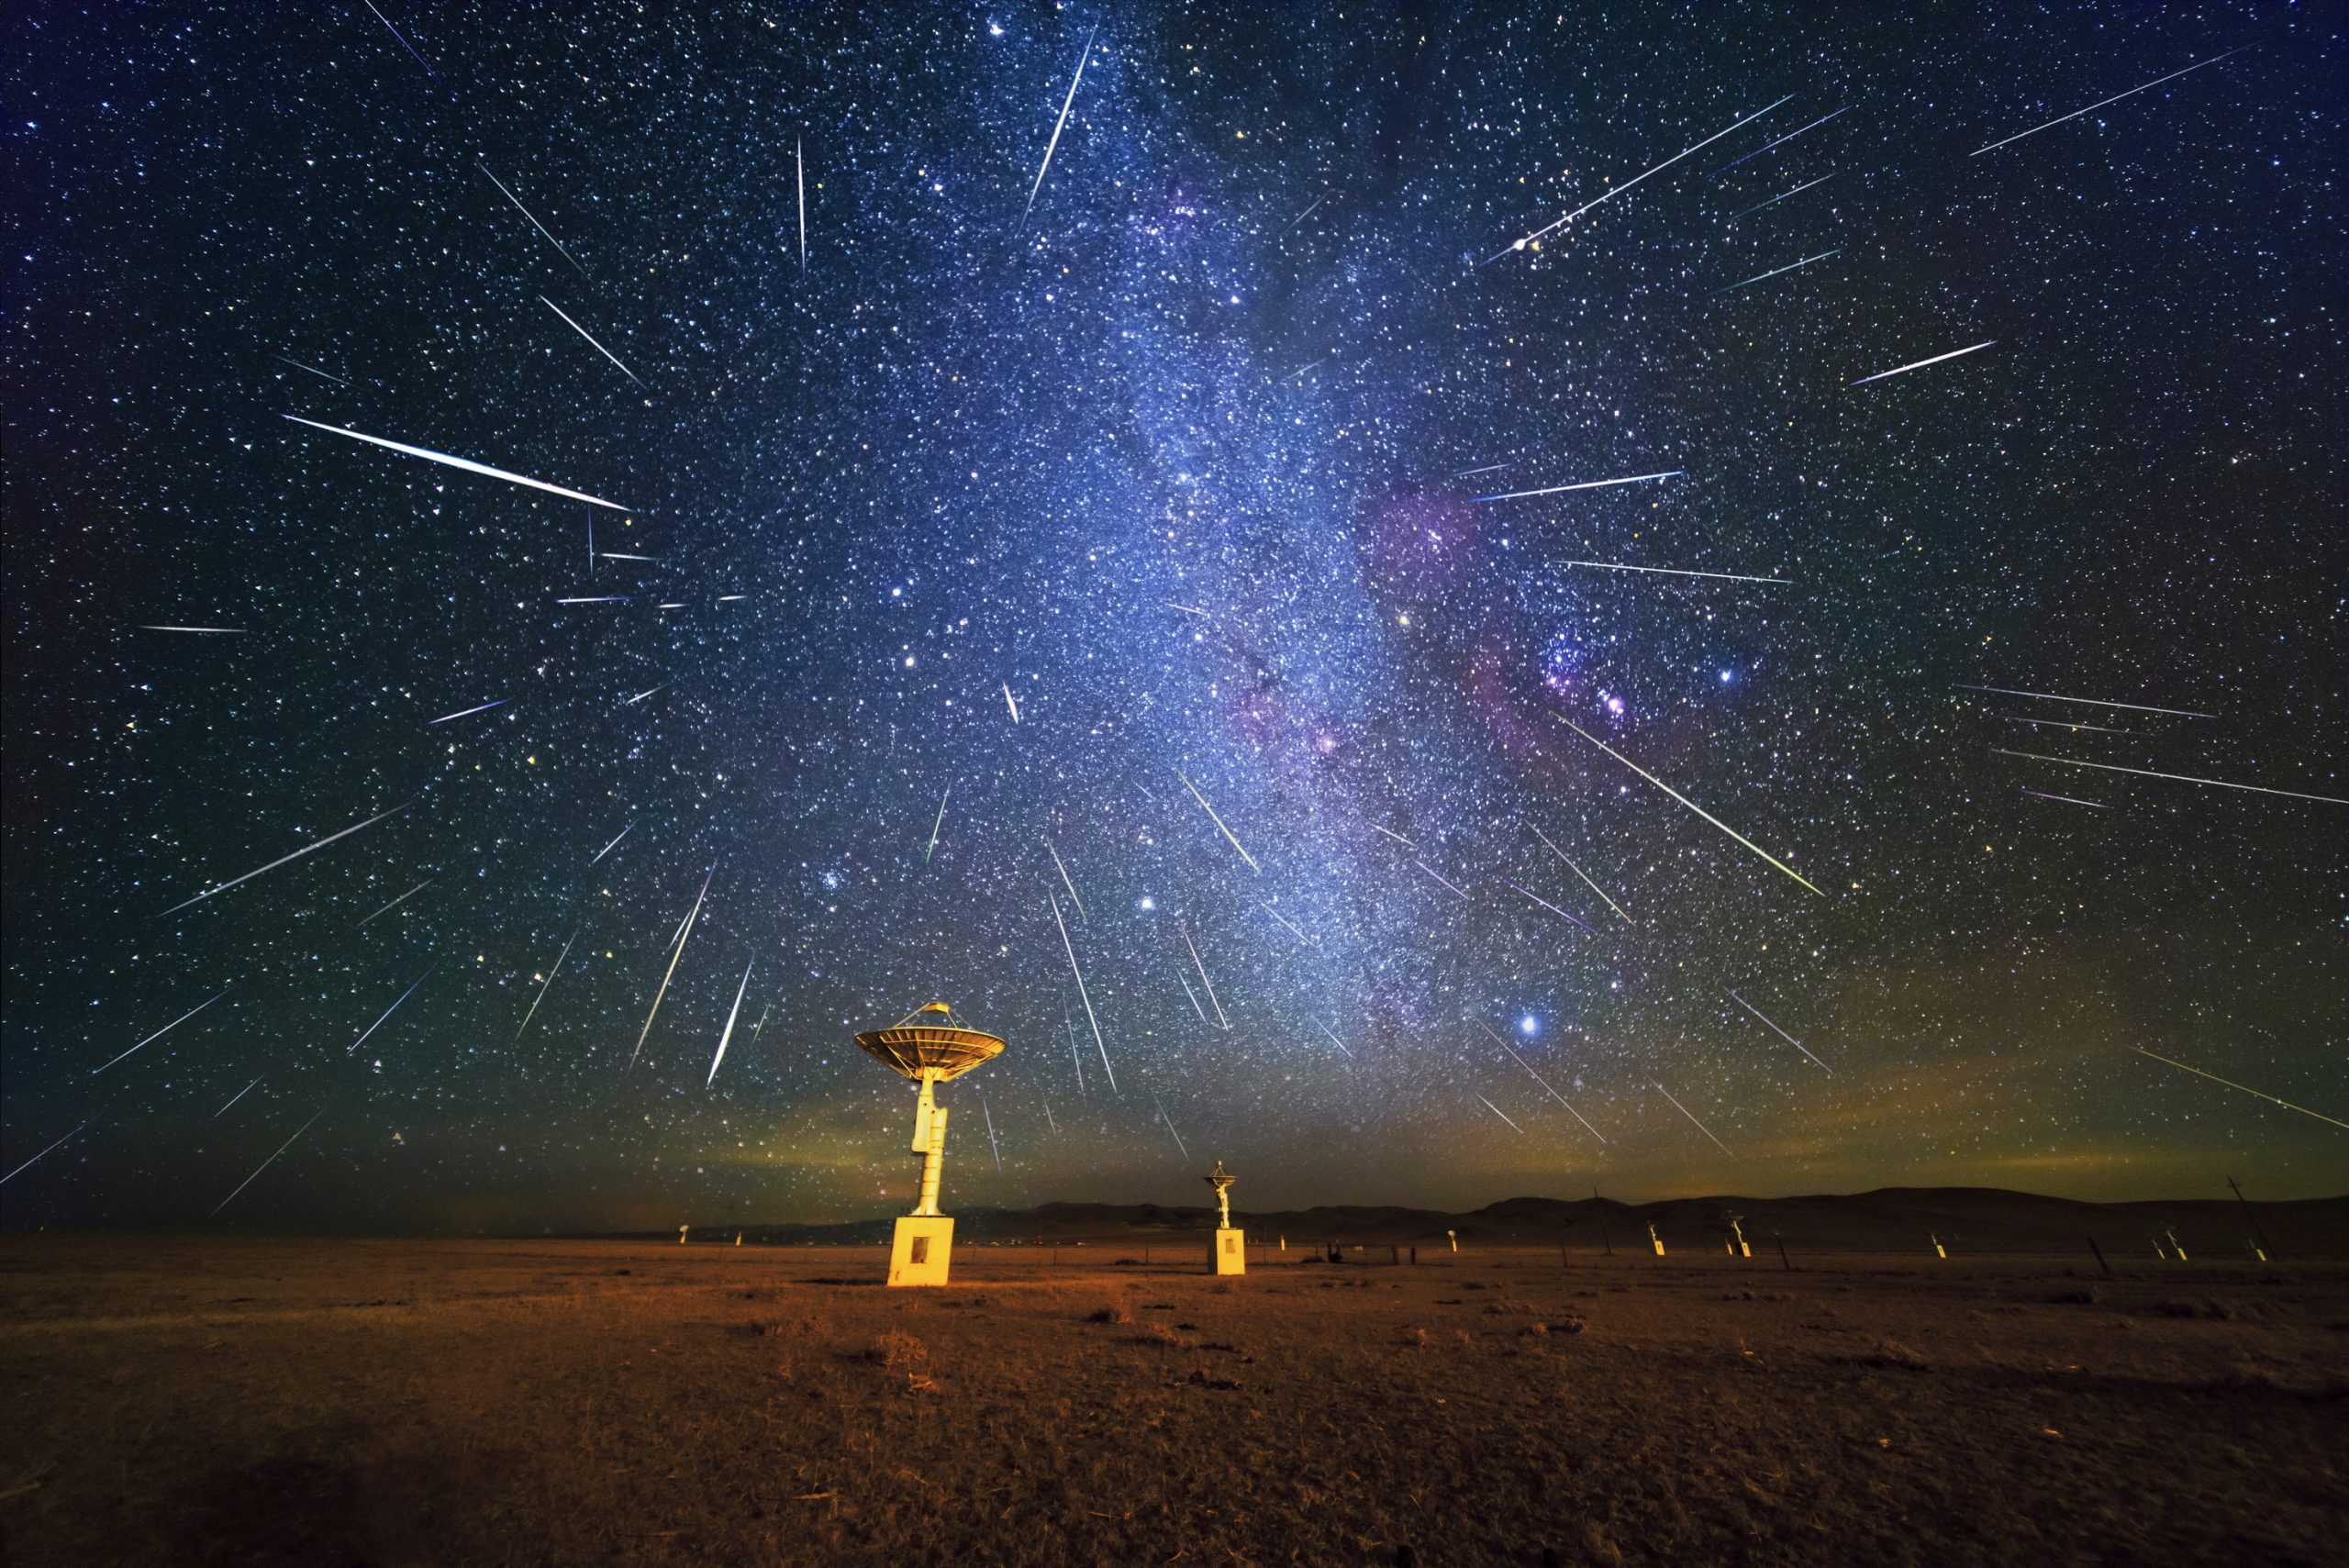 The Perseid meteor shower of 2020 peaks tonight! Here's how to watch live